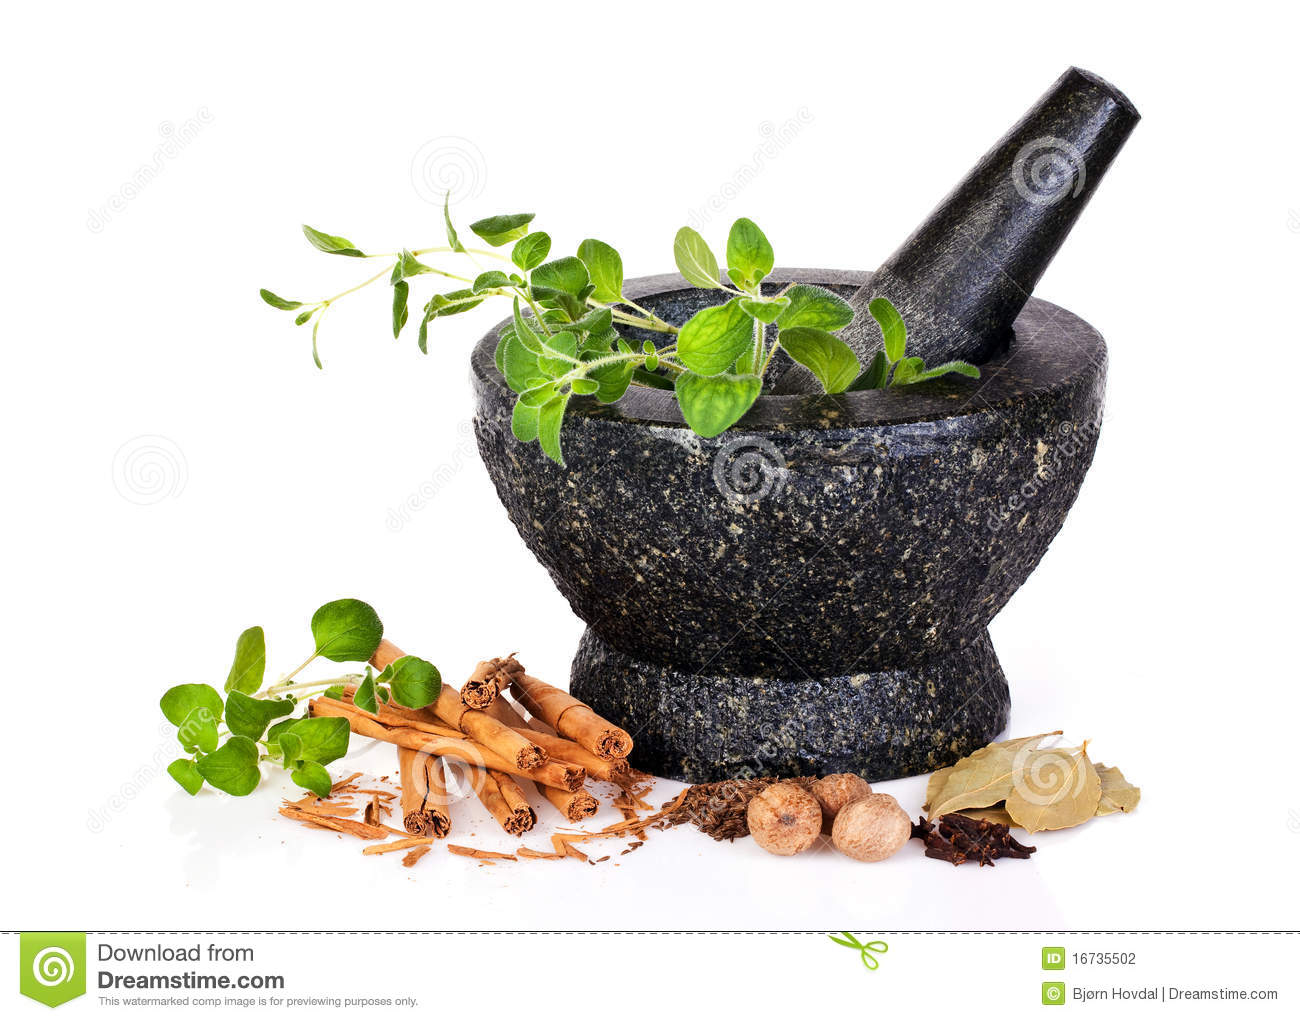 Herbs with mortar